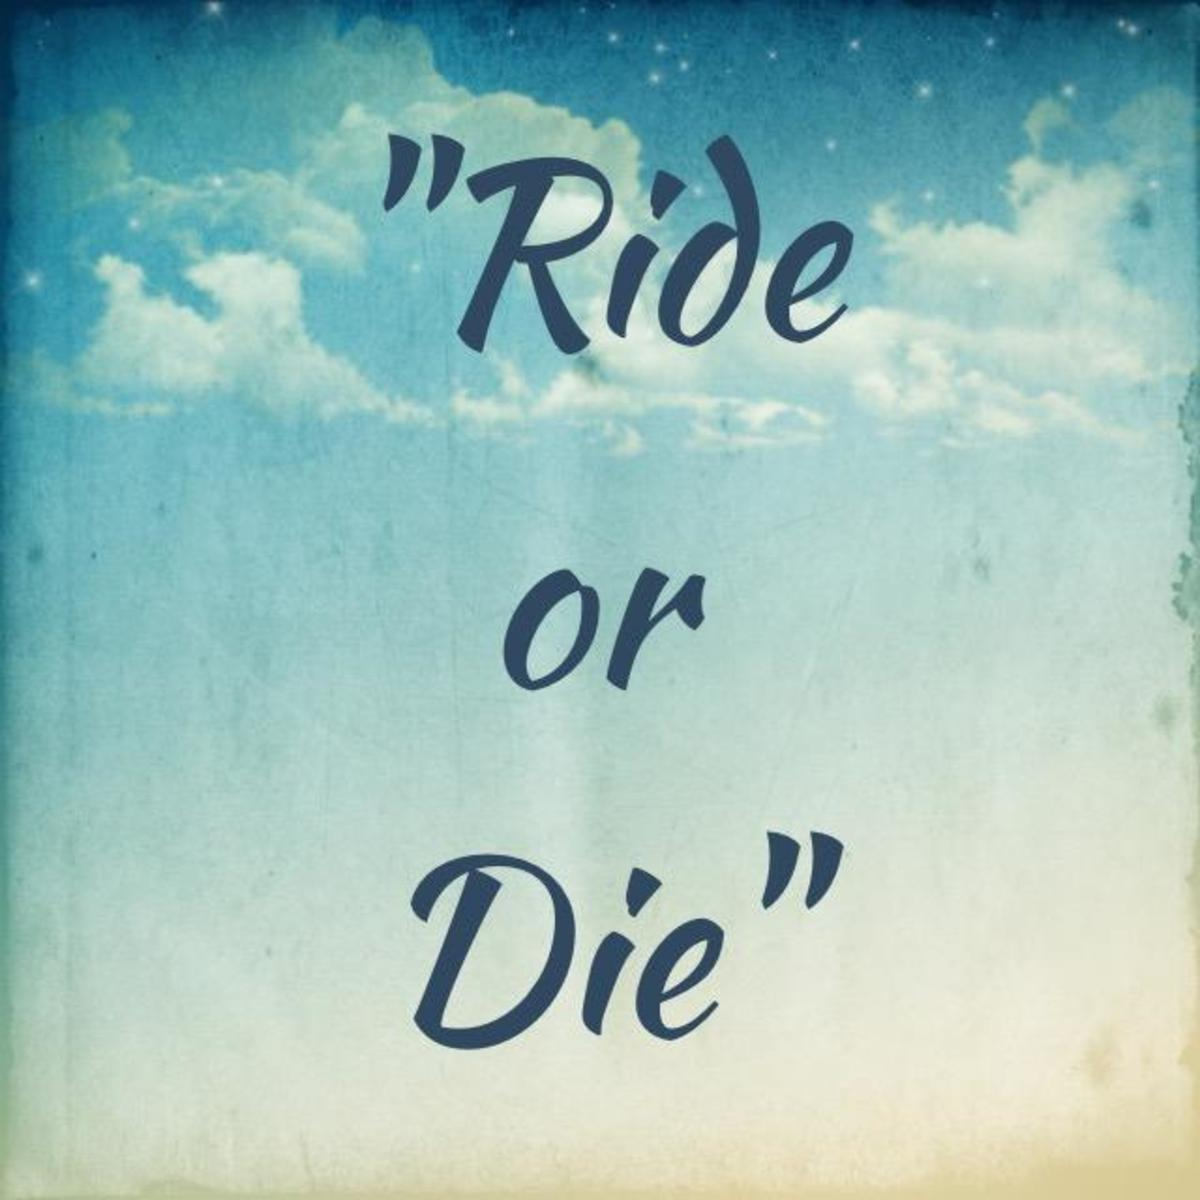 ride-or-die-original-meaning-and-what-it-means-today